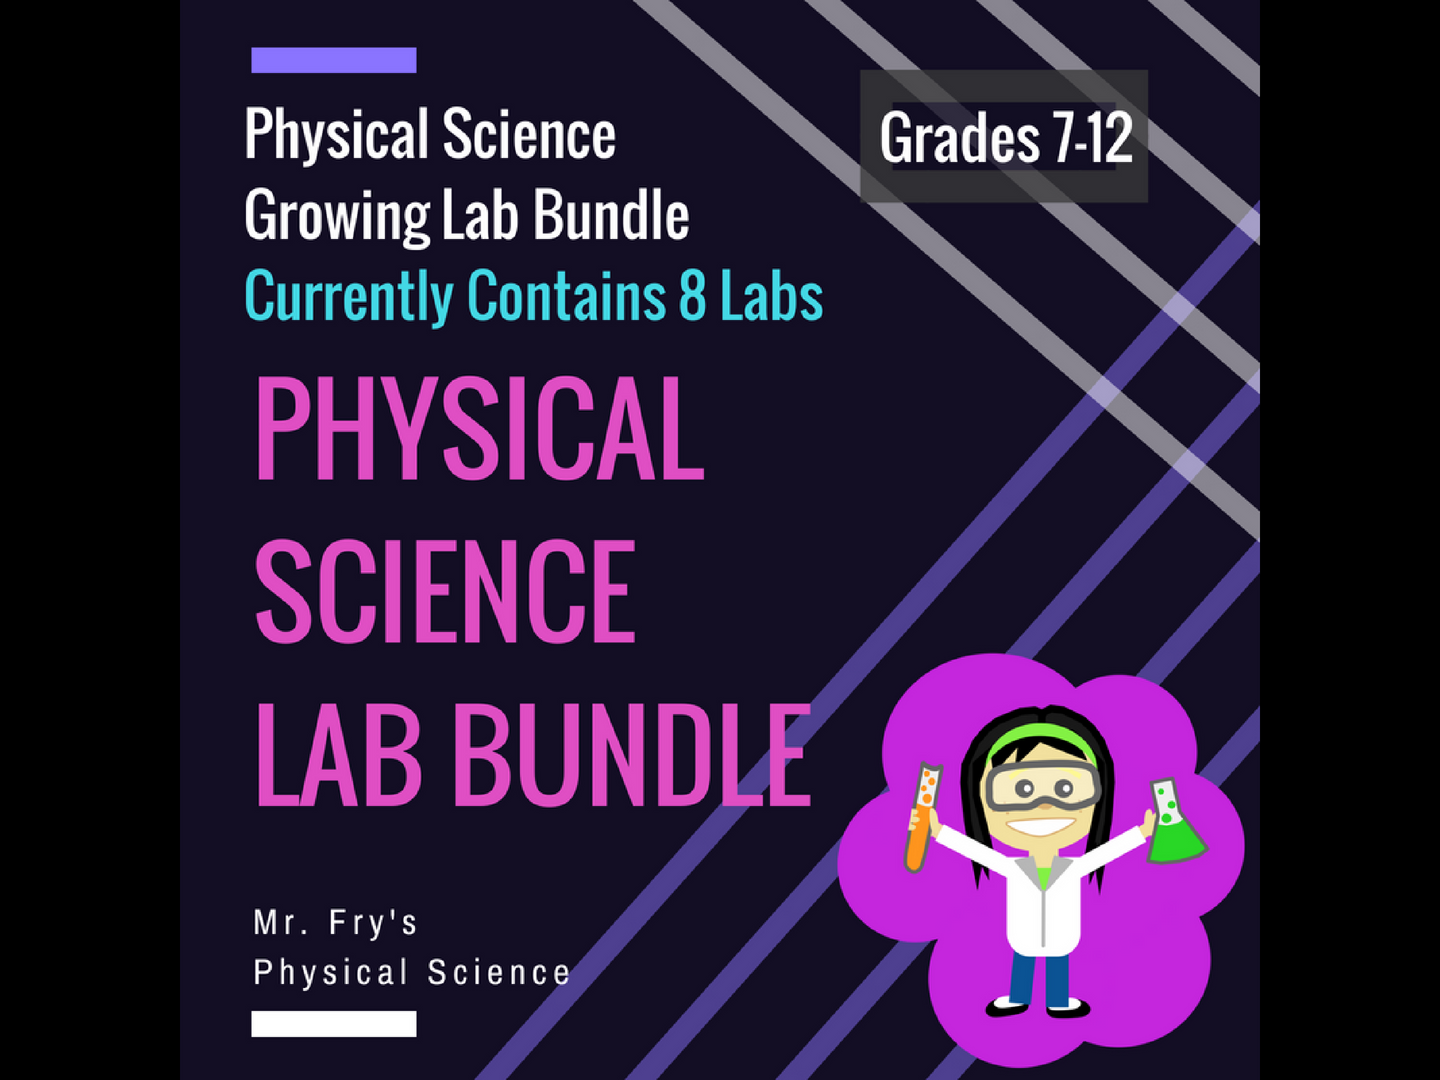 Physical Science Labs - Growing Bundle